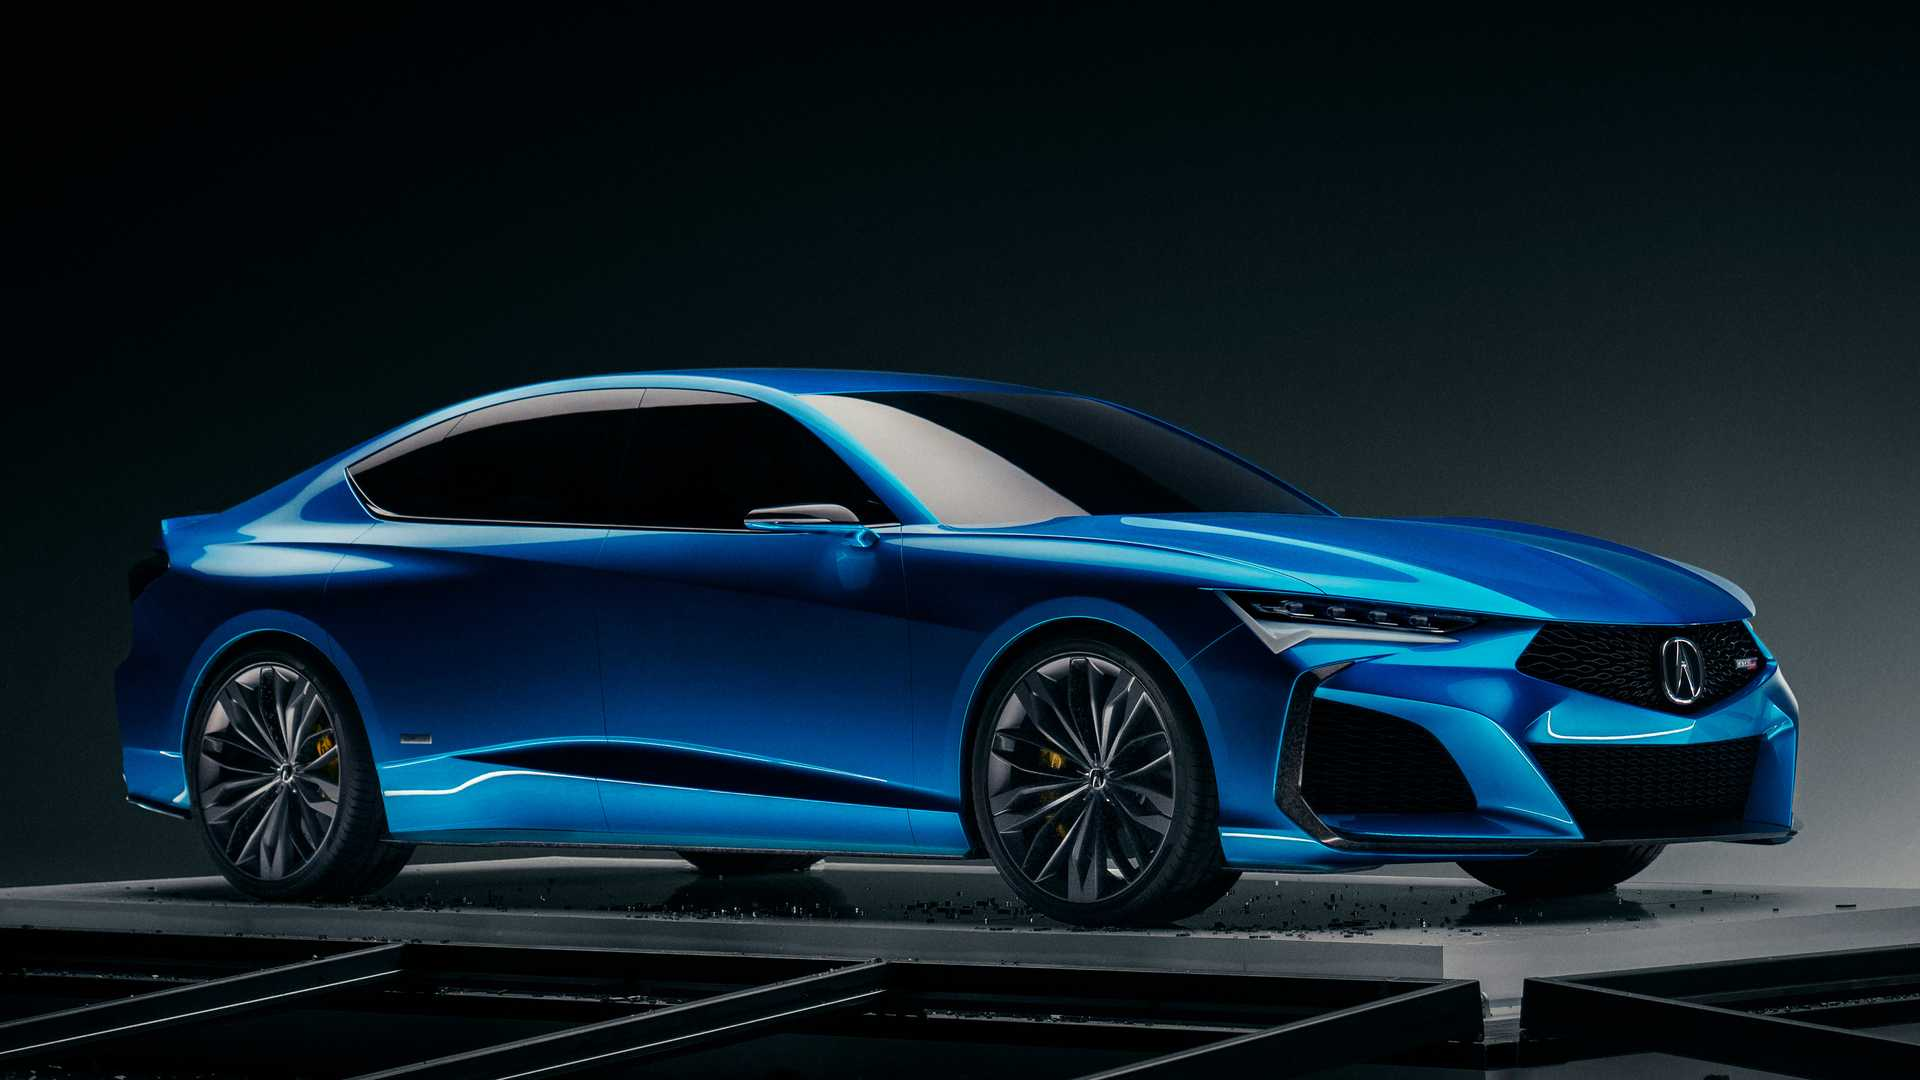 Acura Type S Concept Debuts As Sporty Vision Of Four Door Future 1920x1080